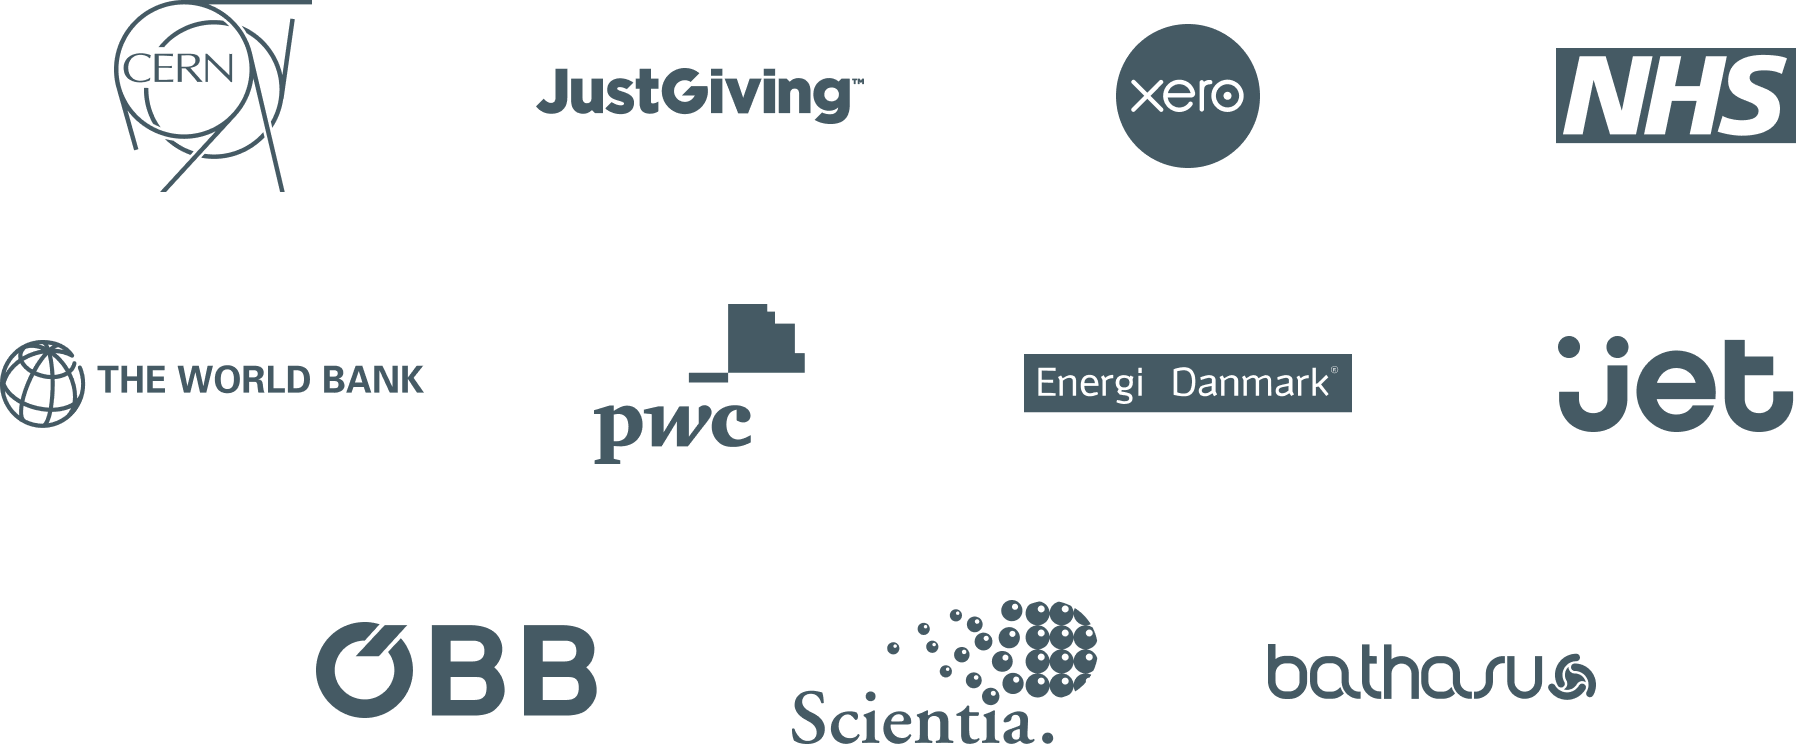 Logos for CERN, JustGiving, Bath ASU, OBB, Jet, Xero and The World Bank